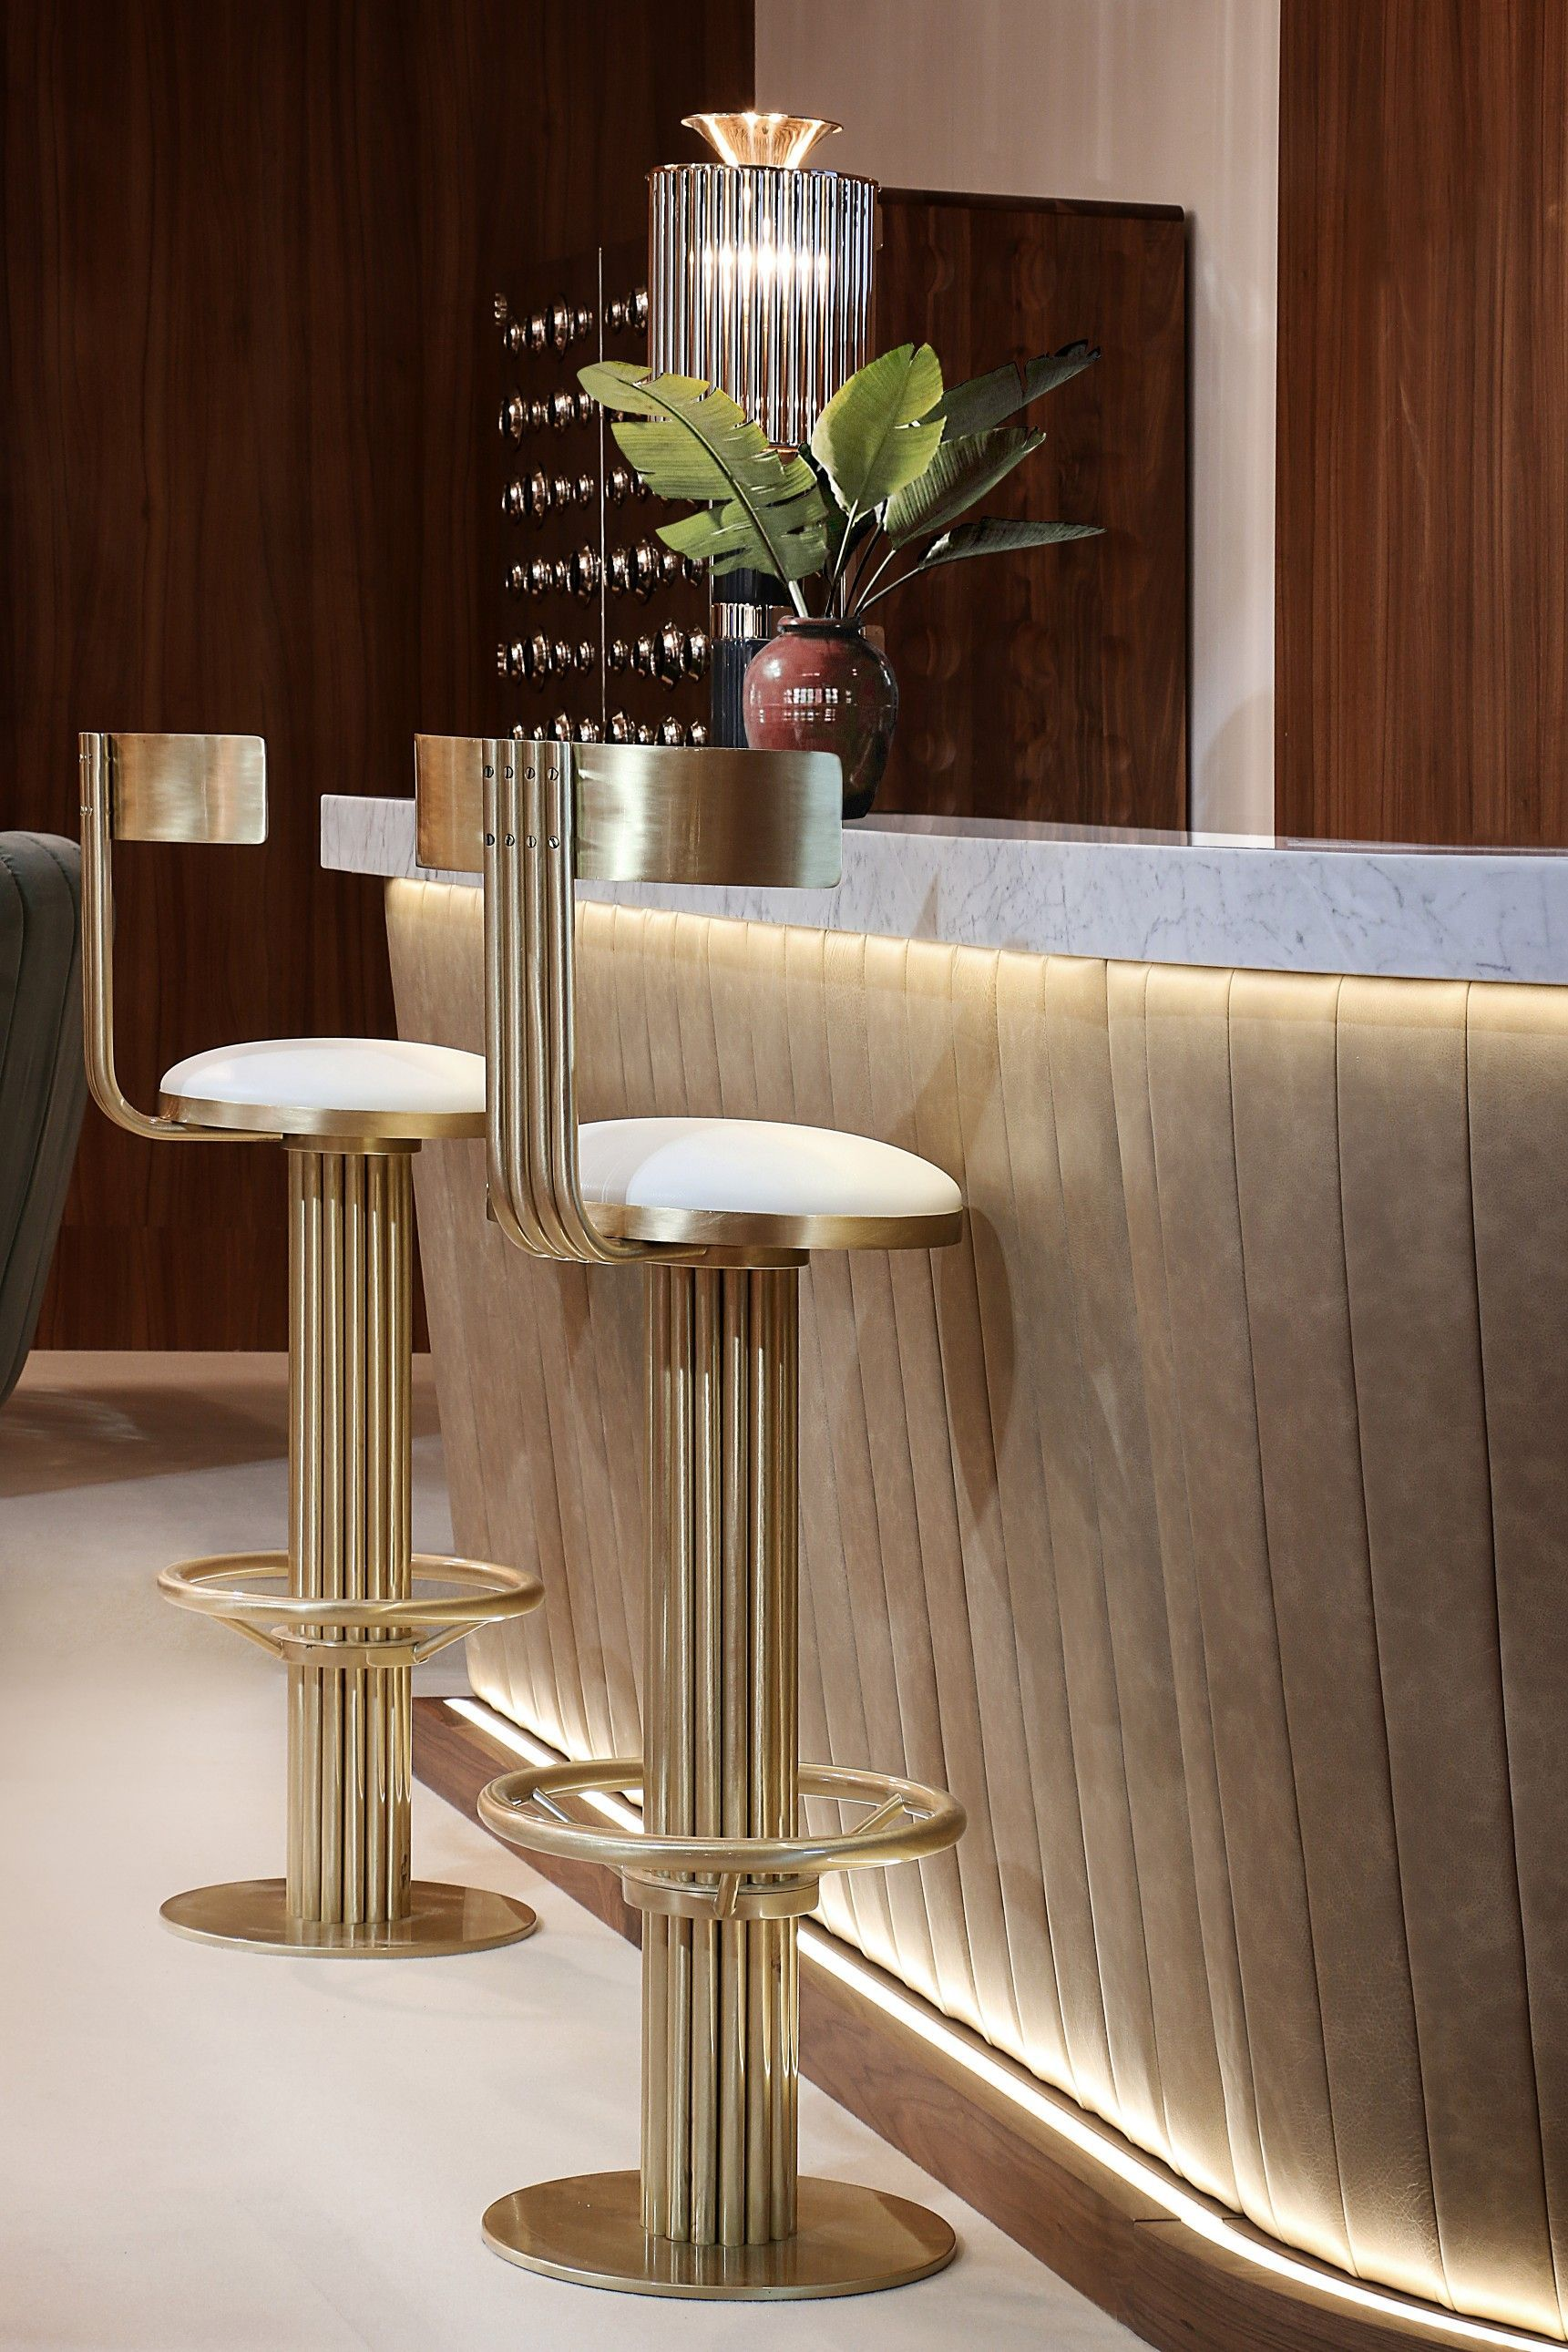 the best jazz albums and their influence in mid century lamps bar rh pinterest ch